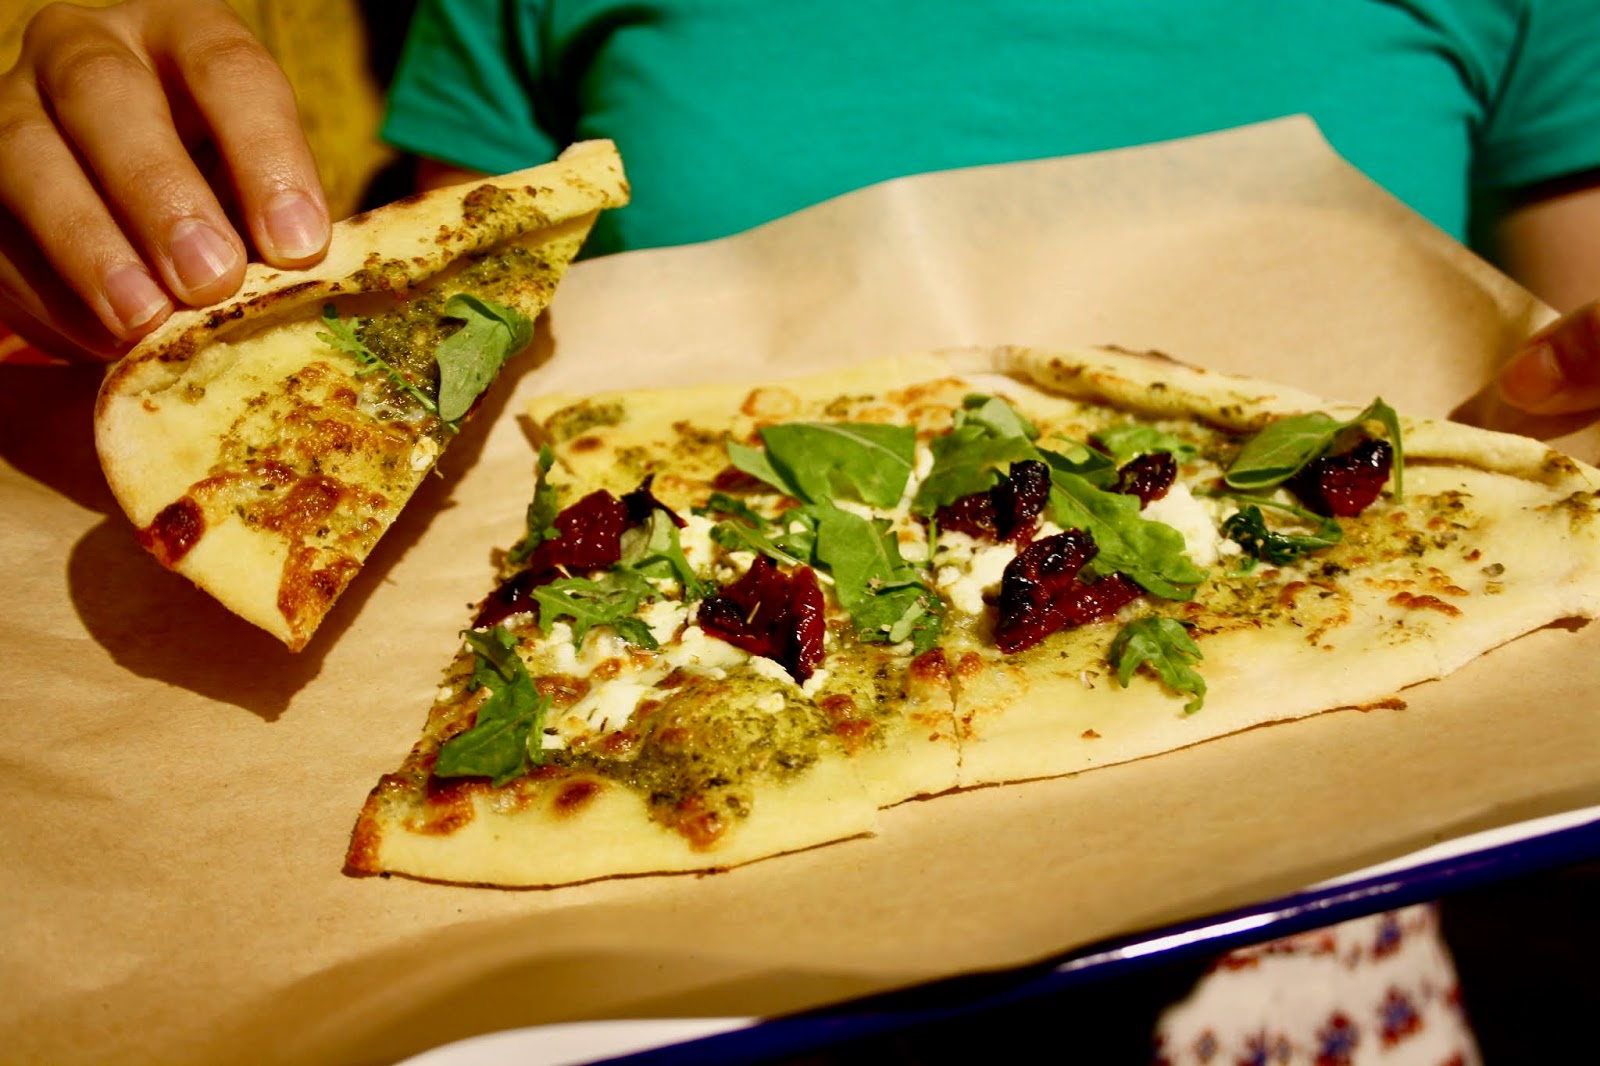 Abbey holds a slice of pesto and feta pizza up towards the camera